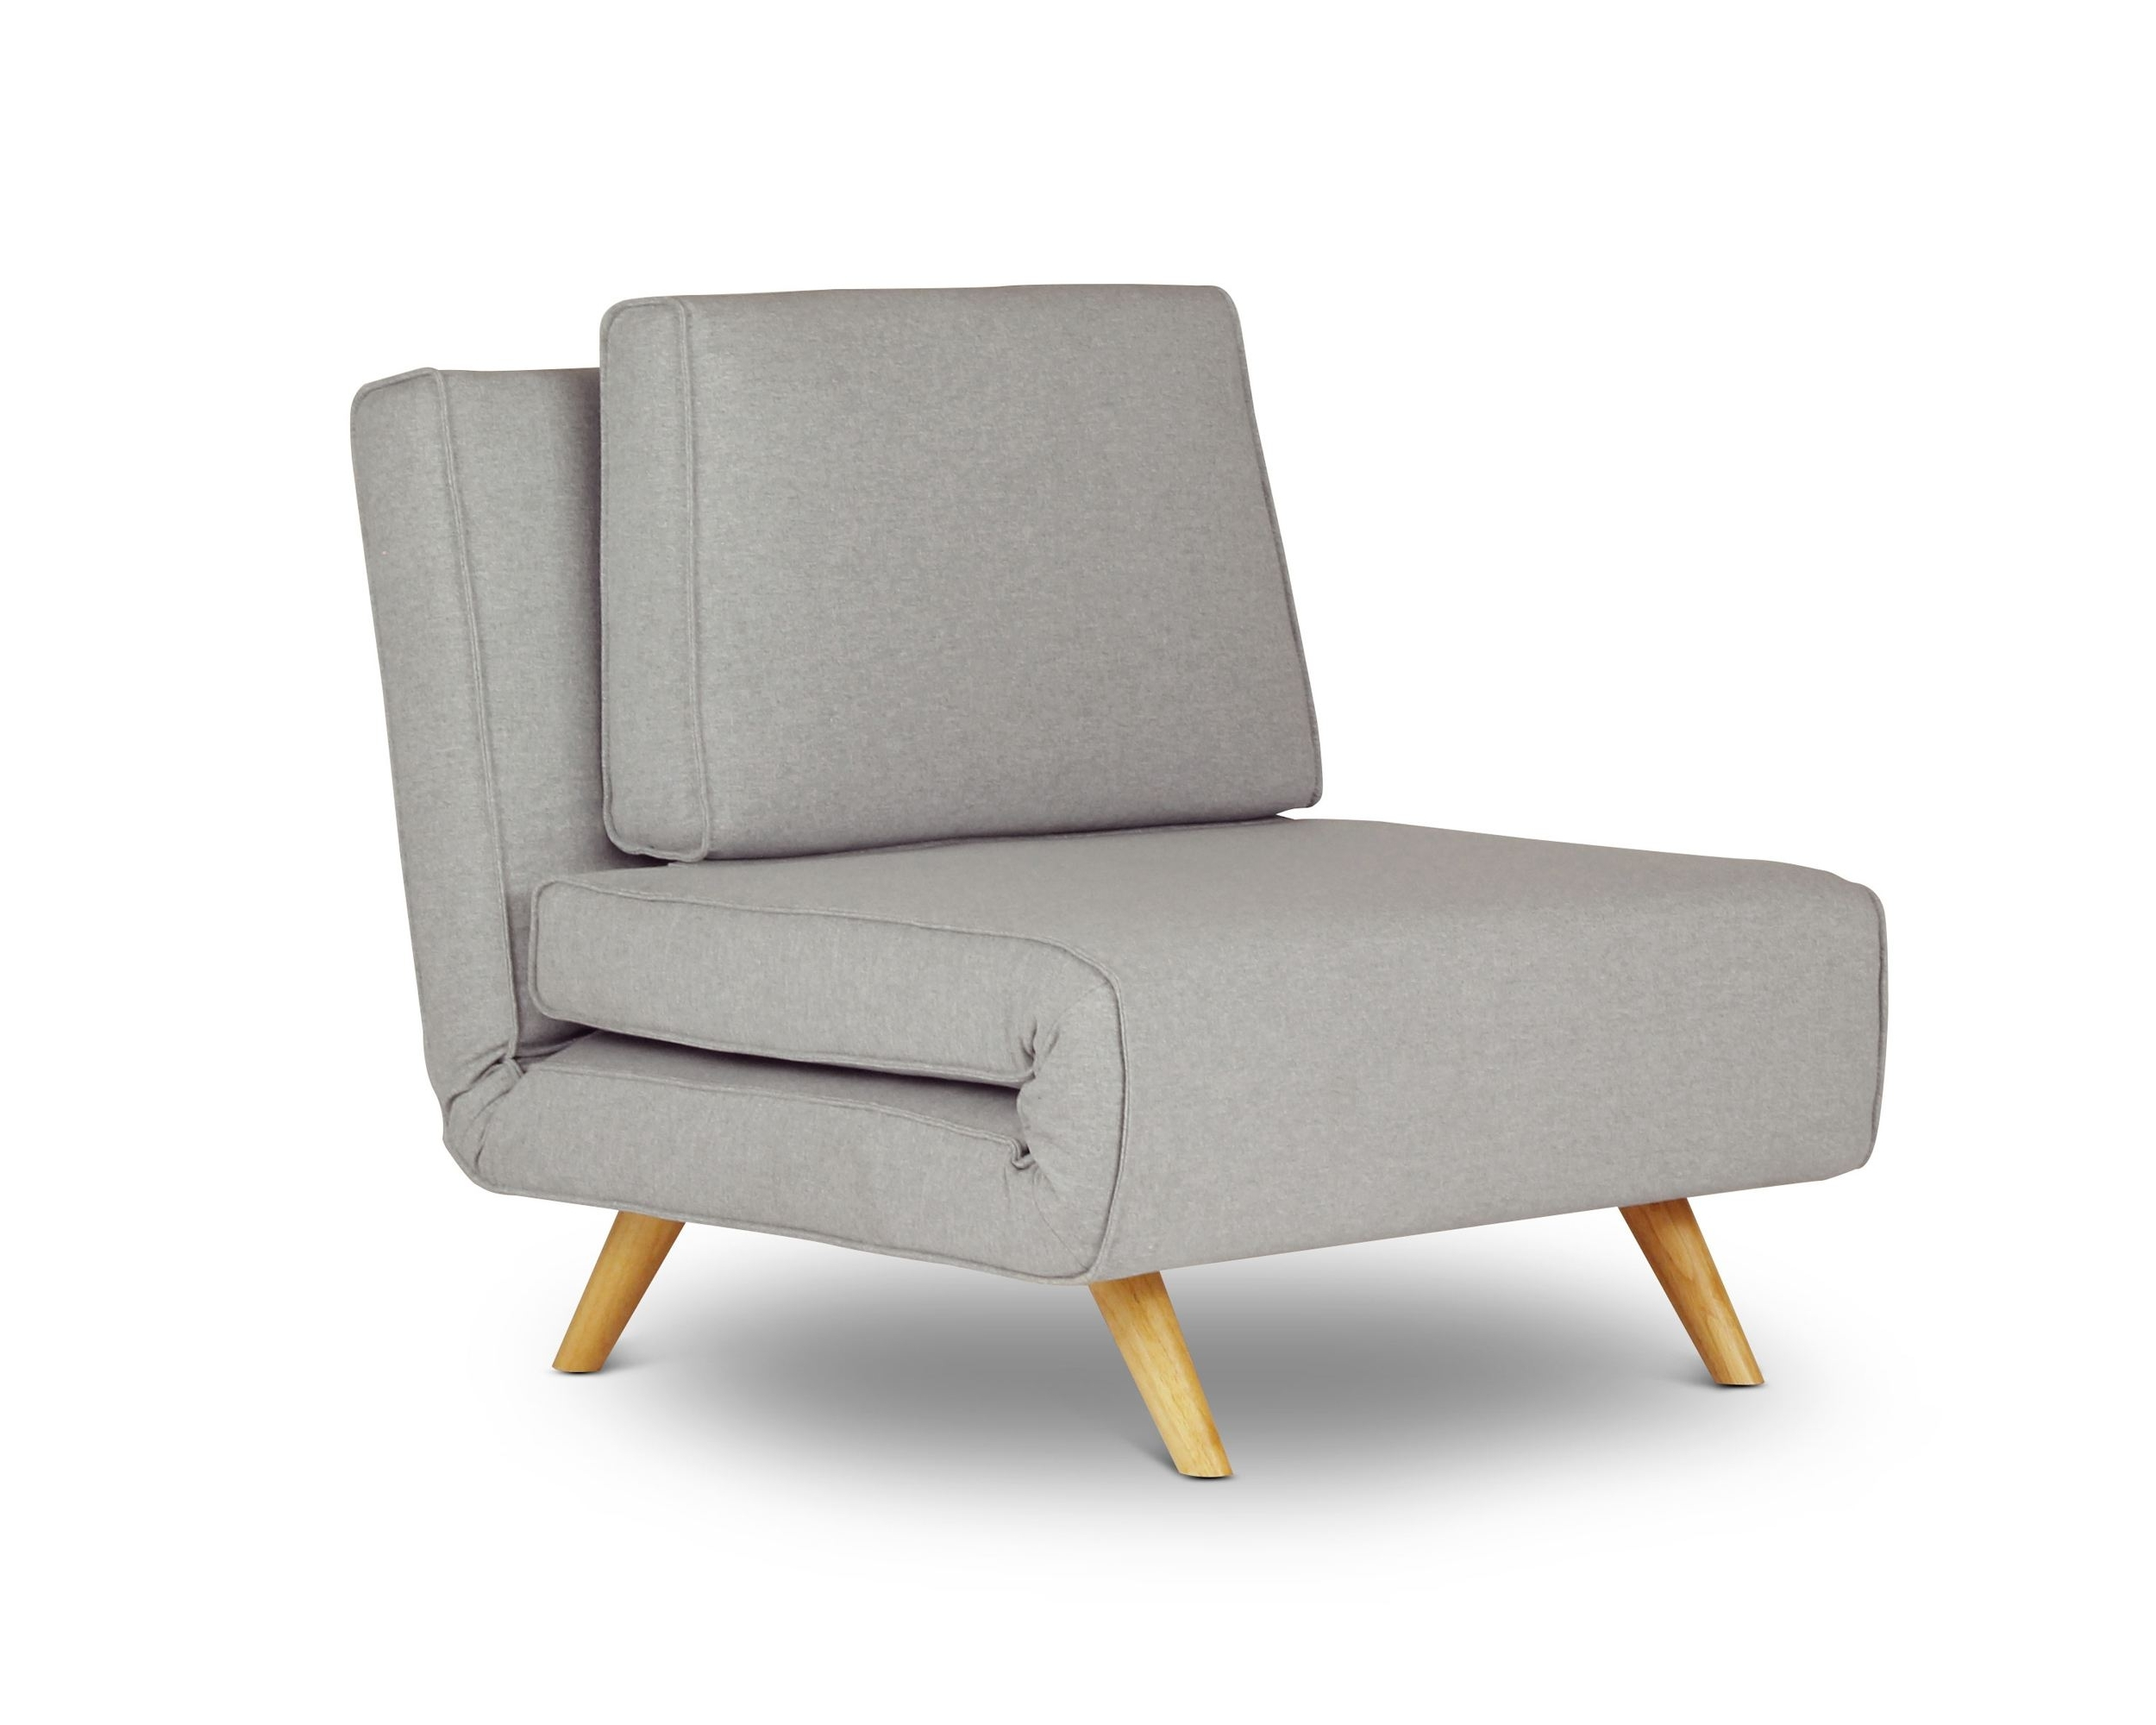 Famous Cheap Single Sofas With Cheap Single Sofa Bed Photo #4 Full Size Of Sofa:outstanding (View 10 of 20)